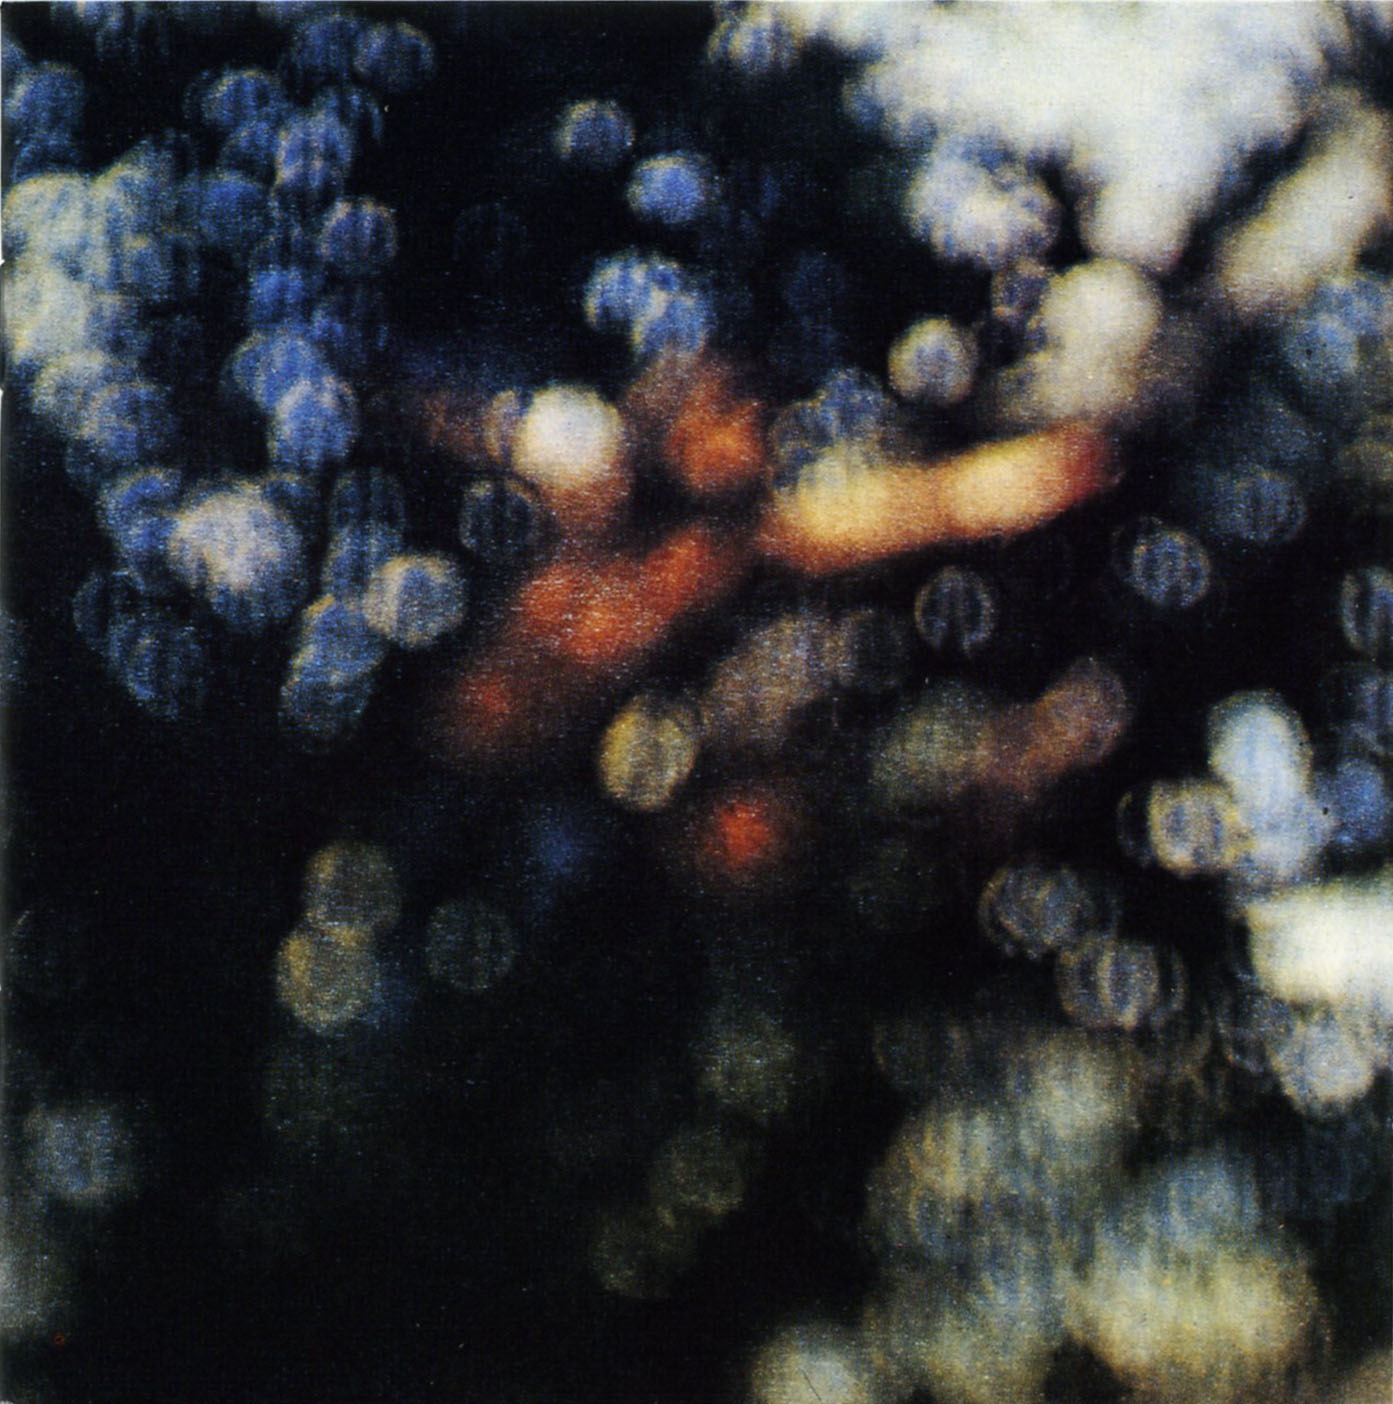 Llegamos tarde: Pink Floyd - Obscured by Clouds